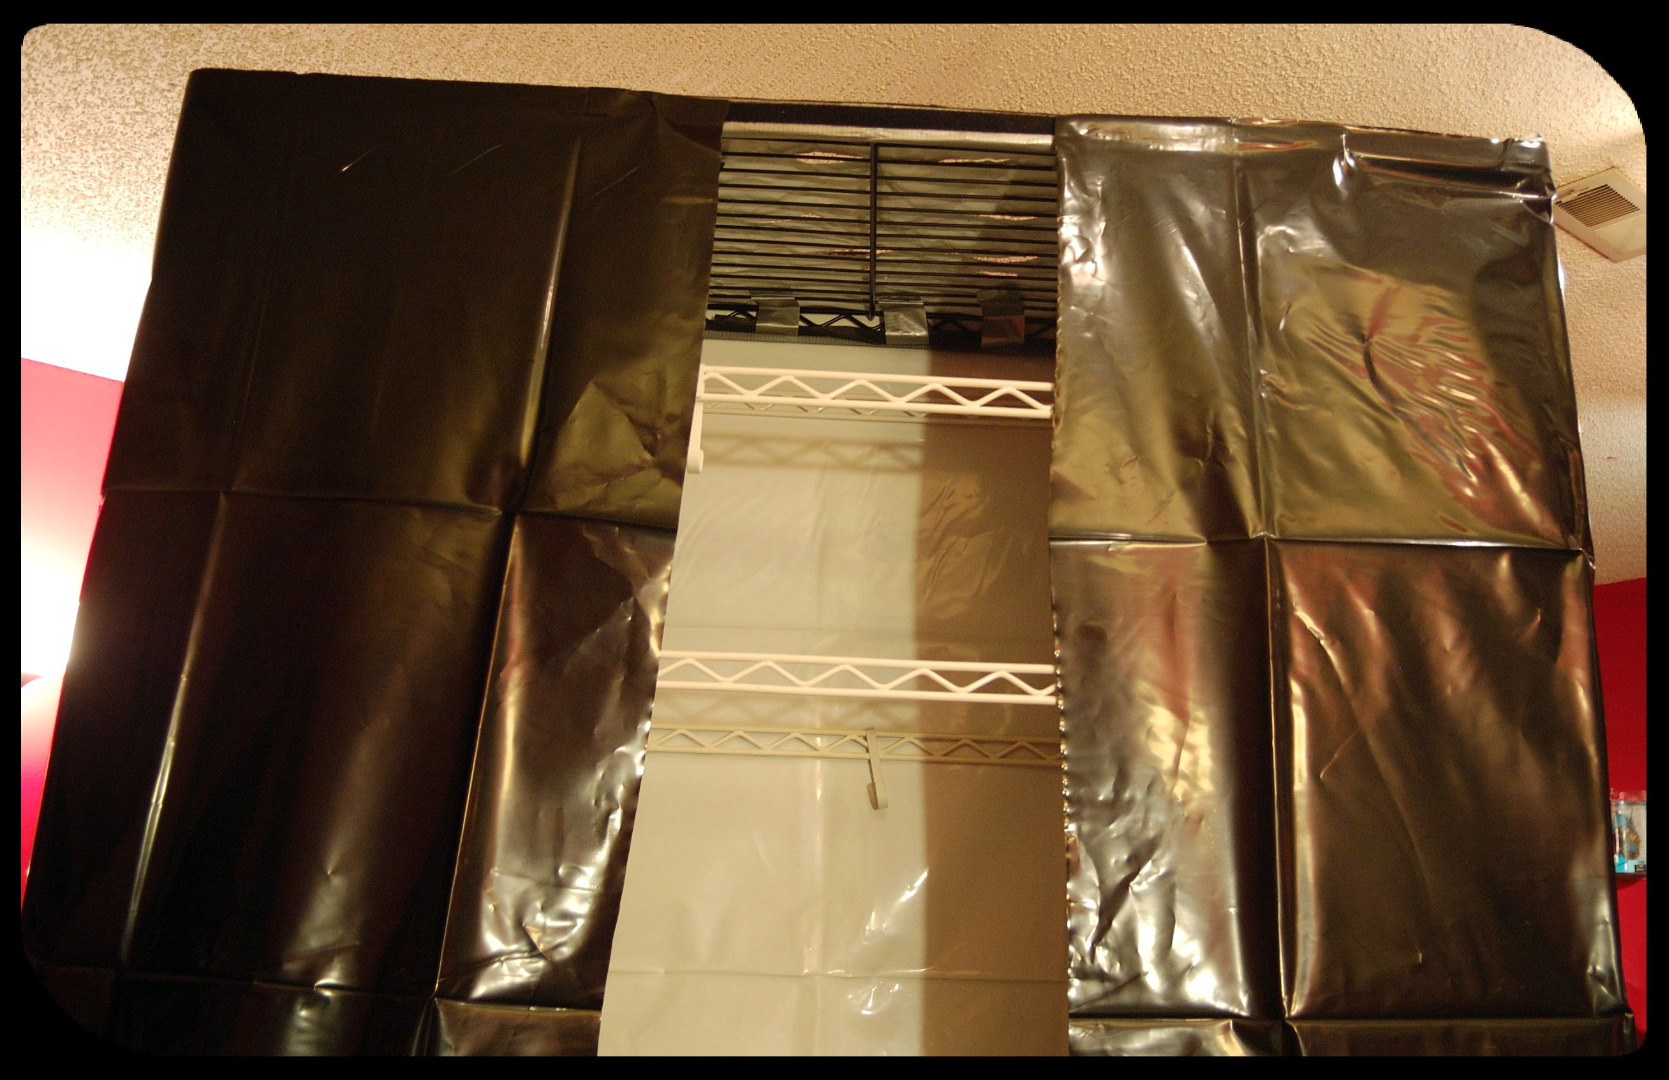 Picture of The Basic Hydroponics Setup Part 4 - Reflective Covering - the Sides